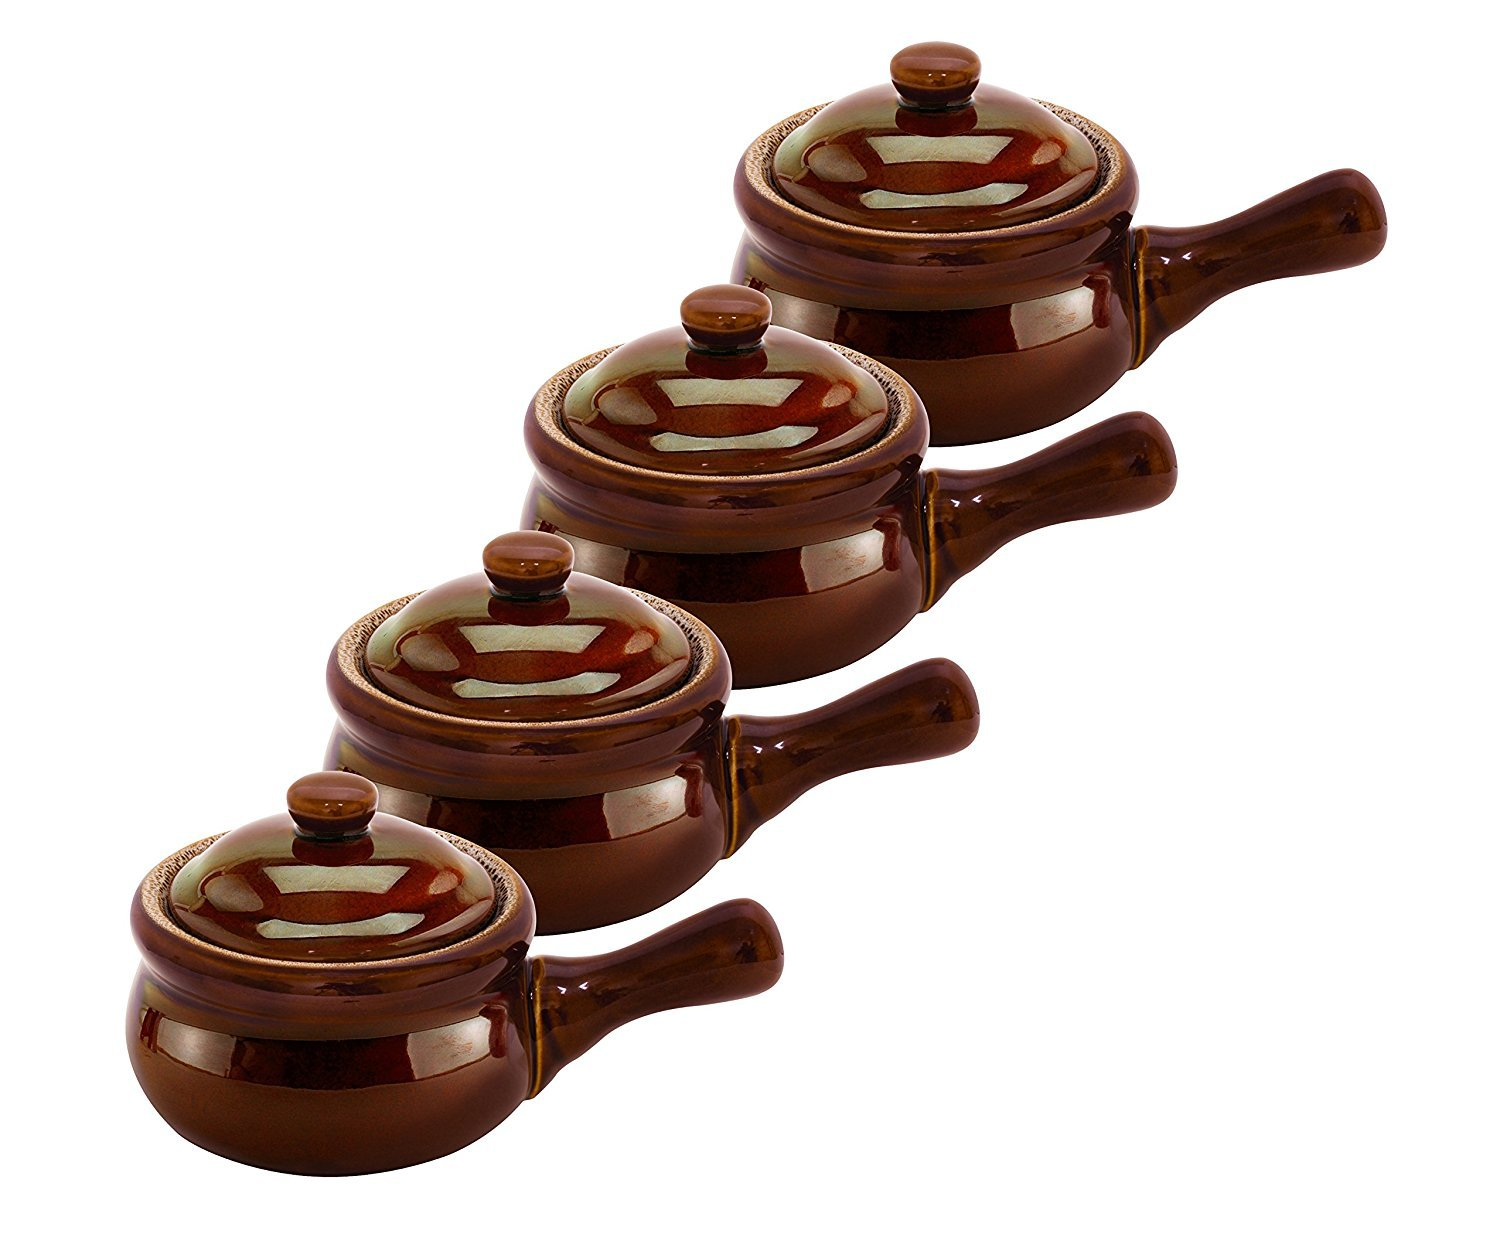 HIC Harold Import Co. 43400 Individual Brown Ceramic Stoneware 14 oz French Onion Soup Crock Chili Bowls (Set Of 4)